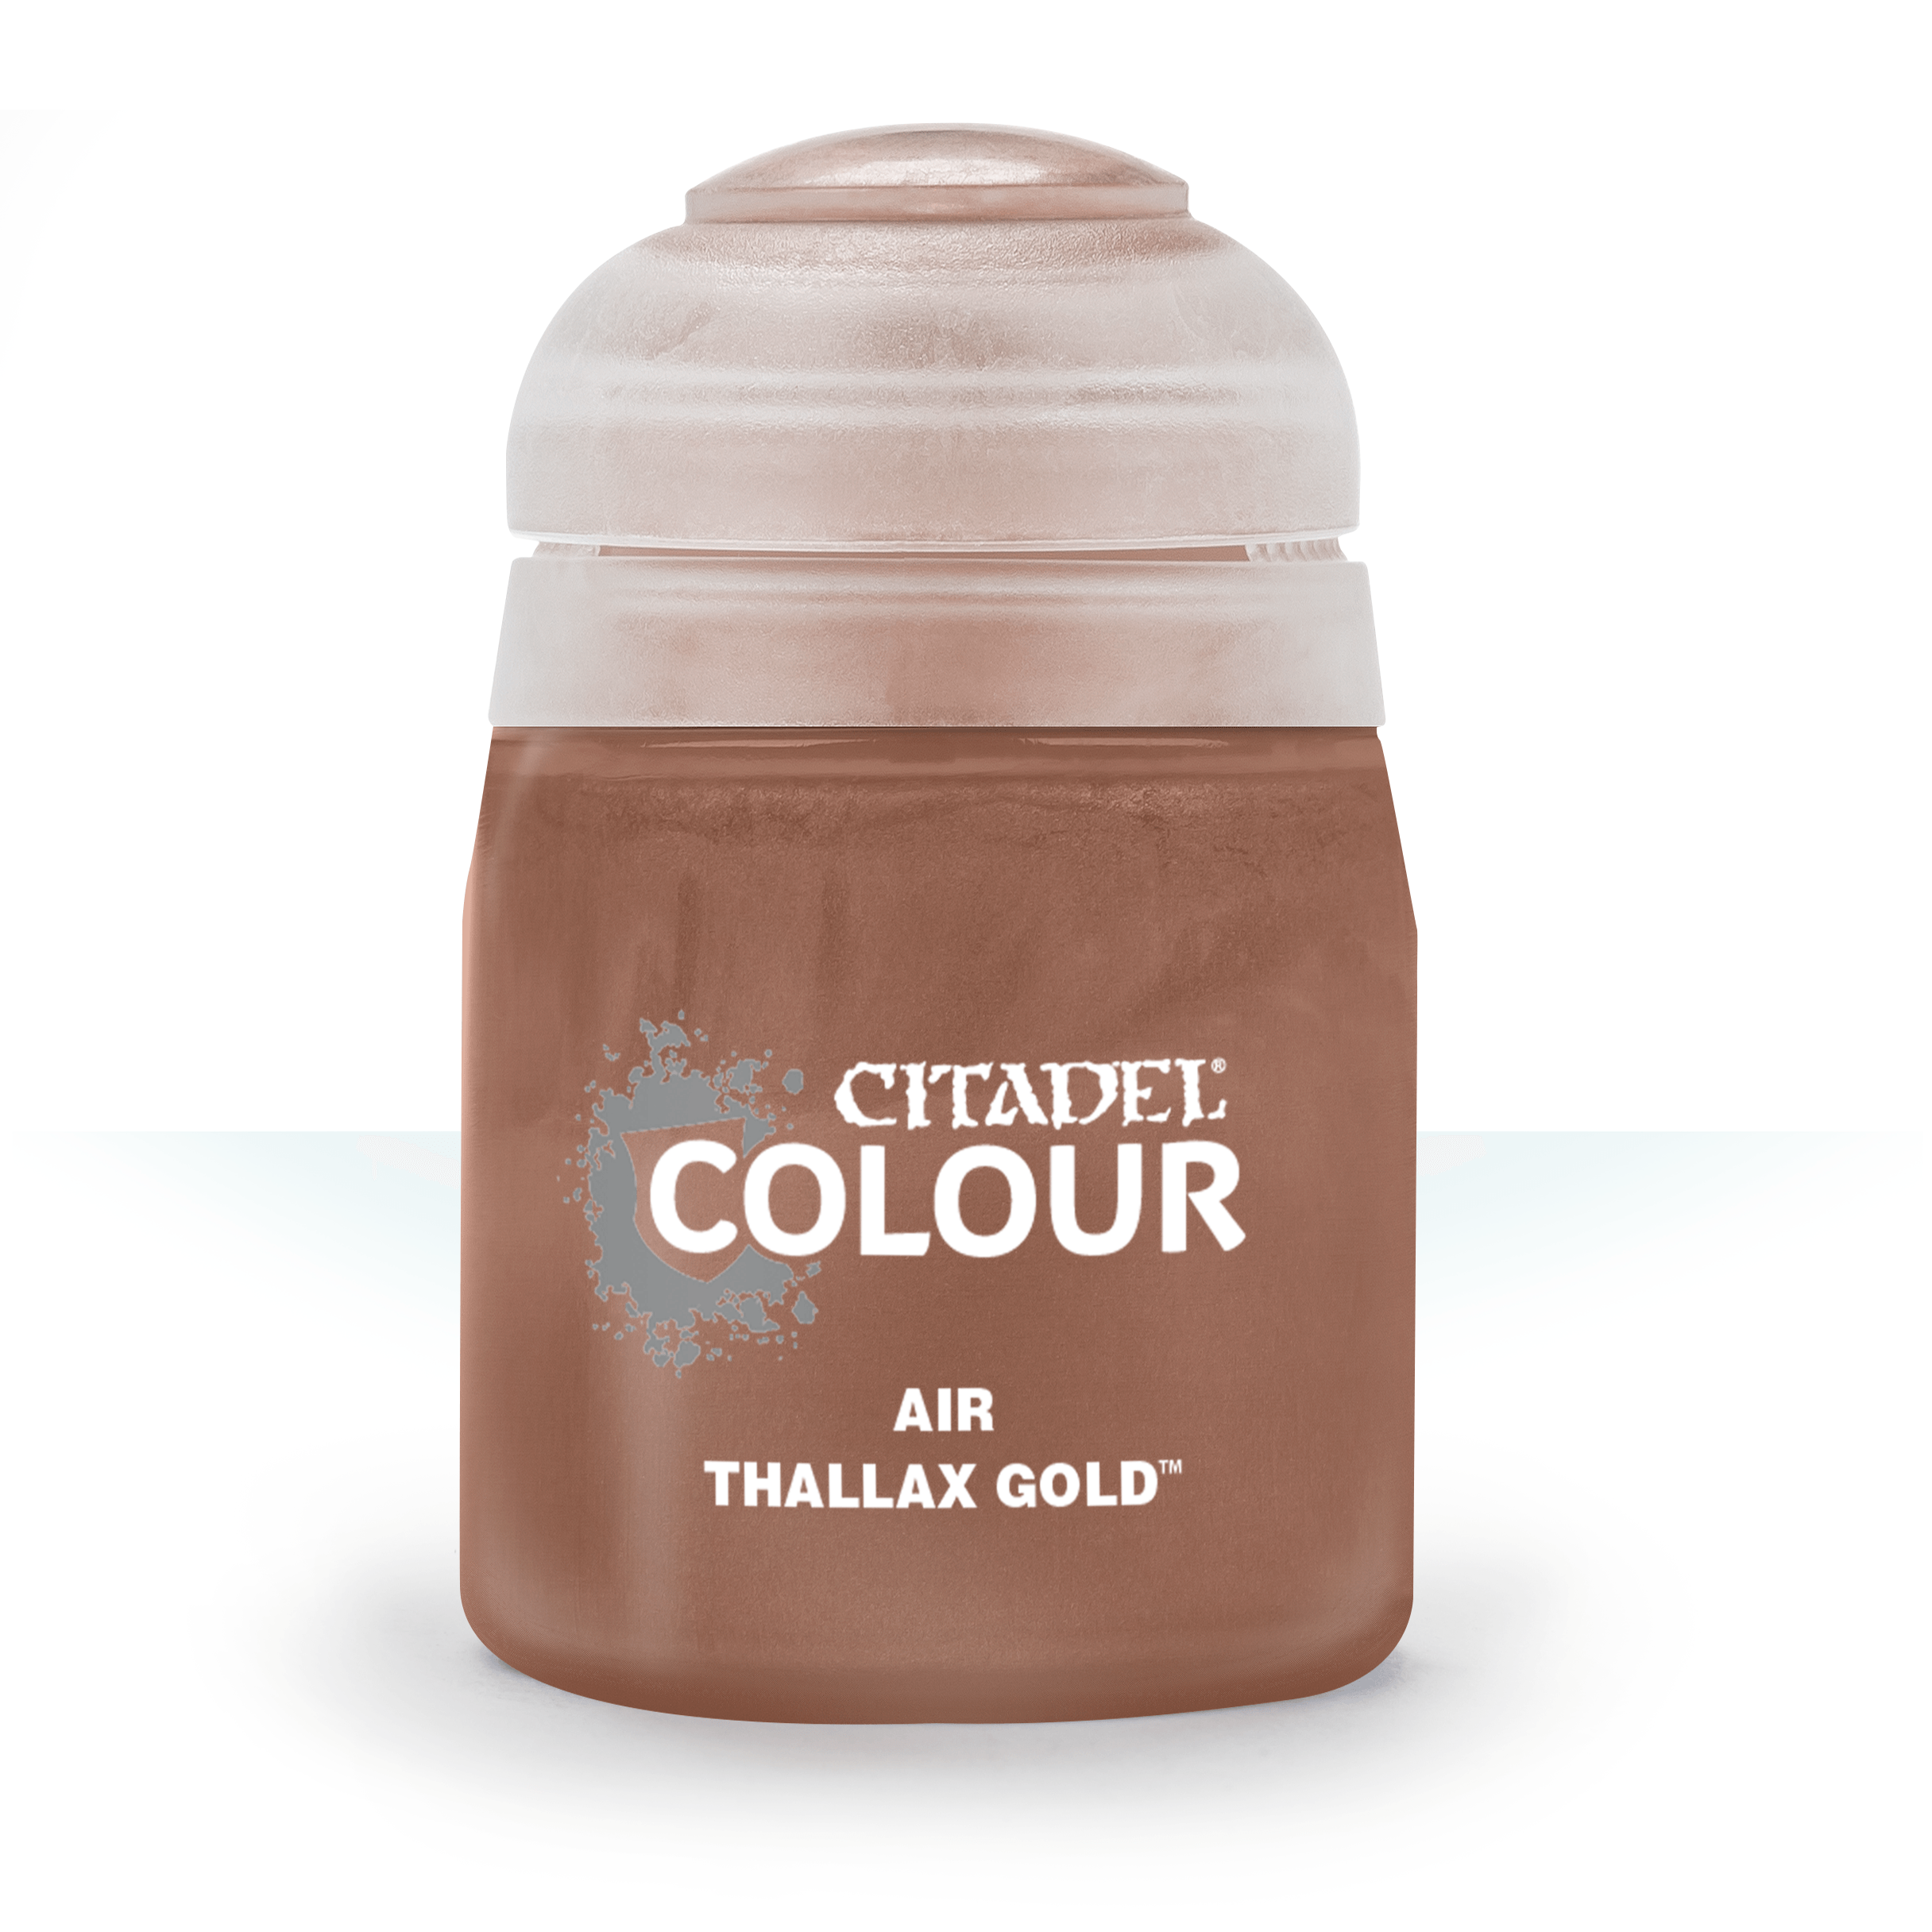 Citadel Airbrush Paints: Thallax Gold